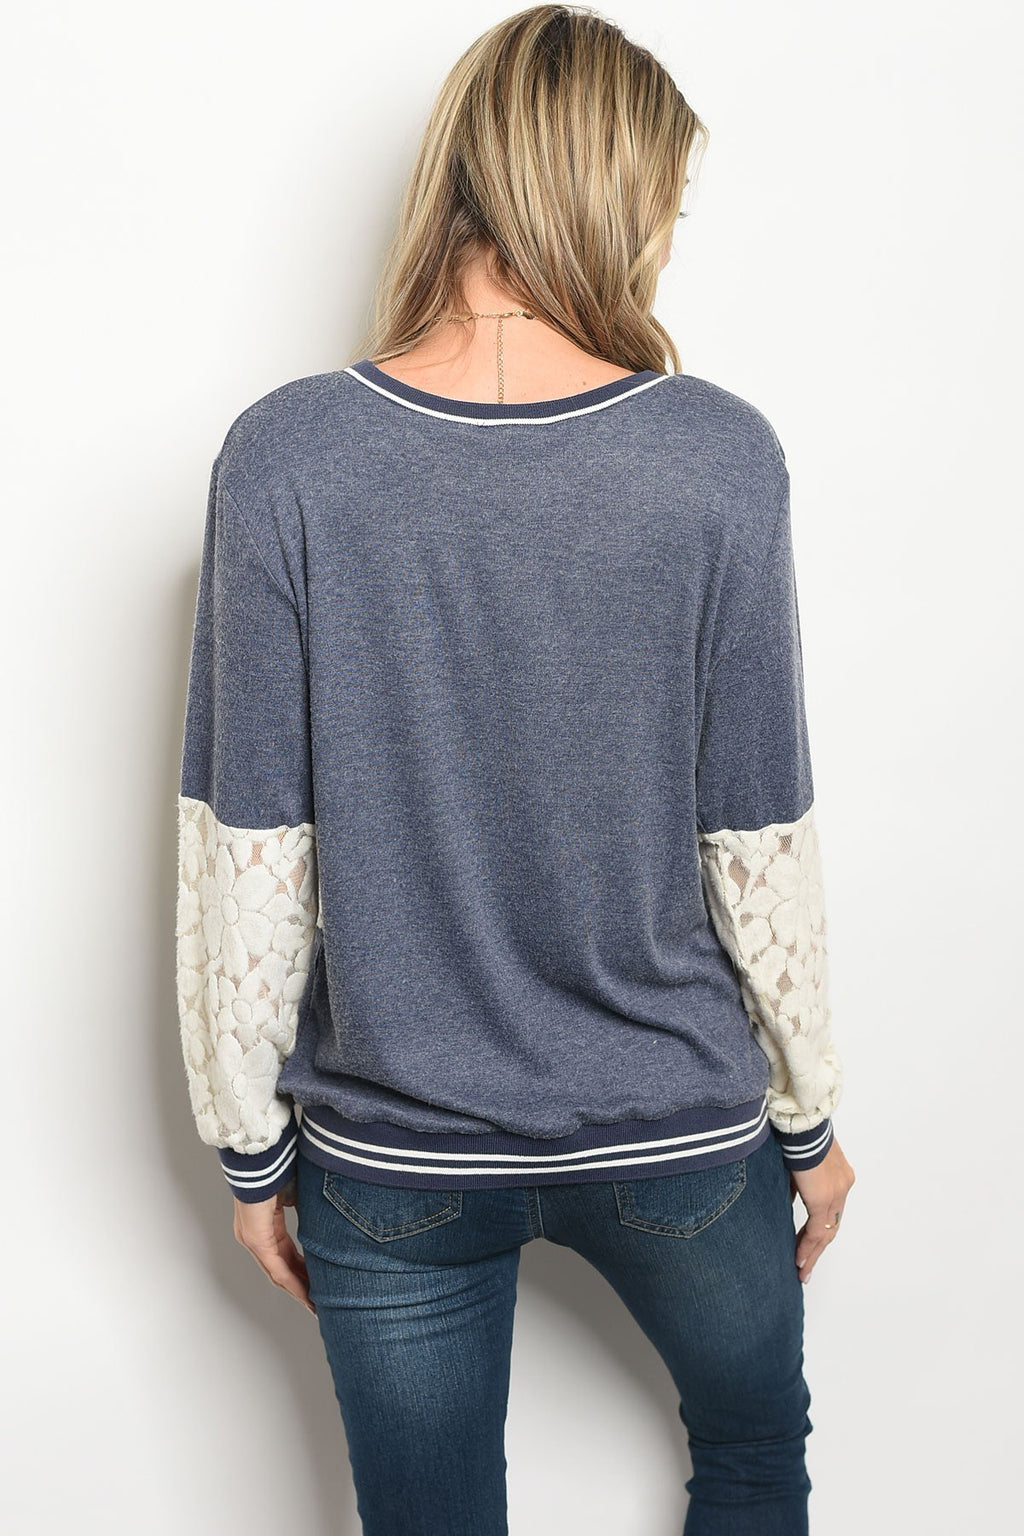 Ladies fashion long sleeve light weight knit top wit a crew neckline and lace details